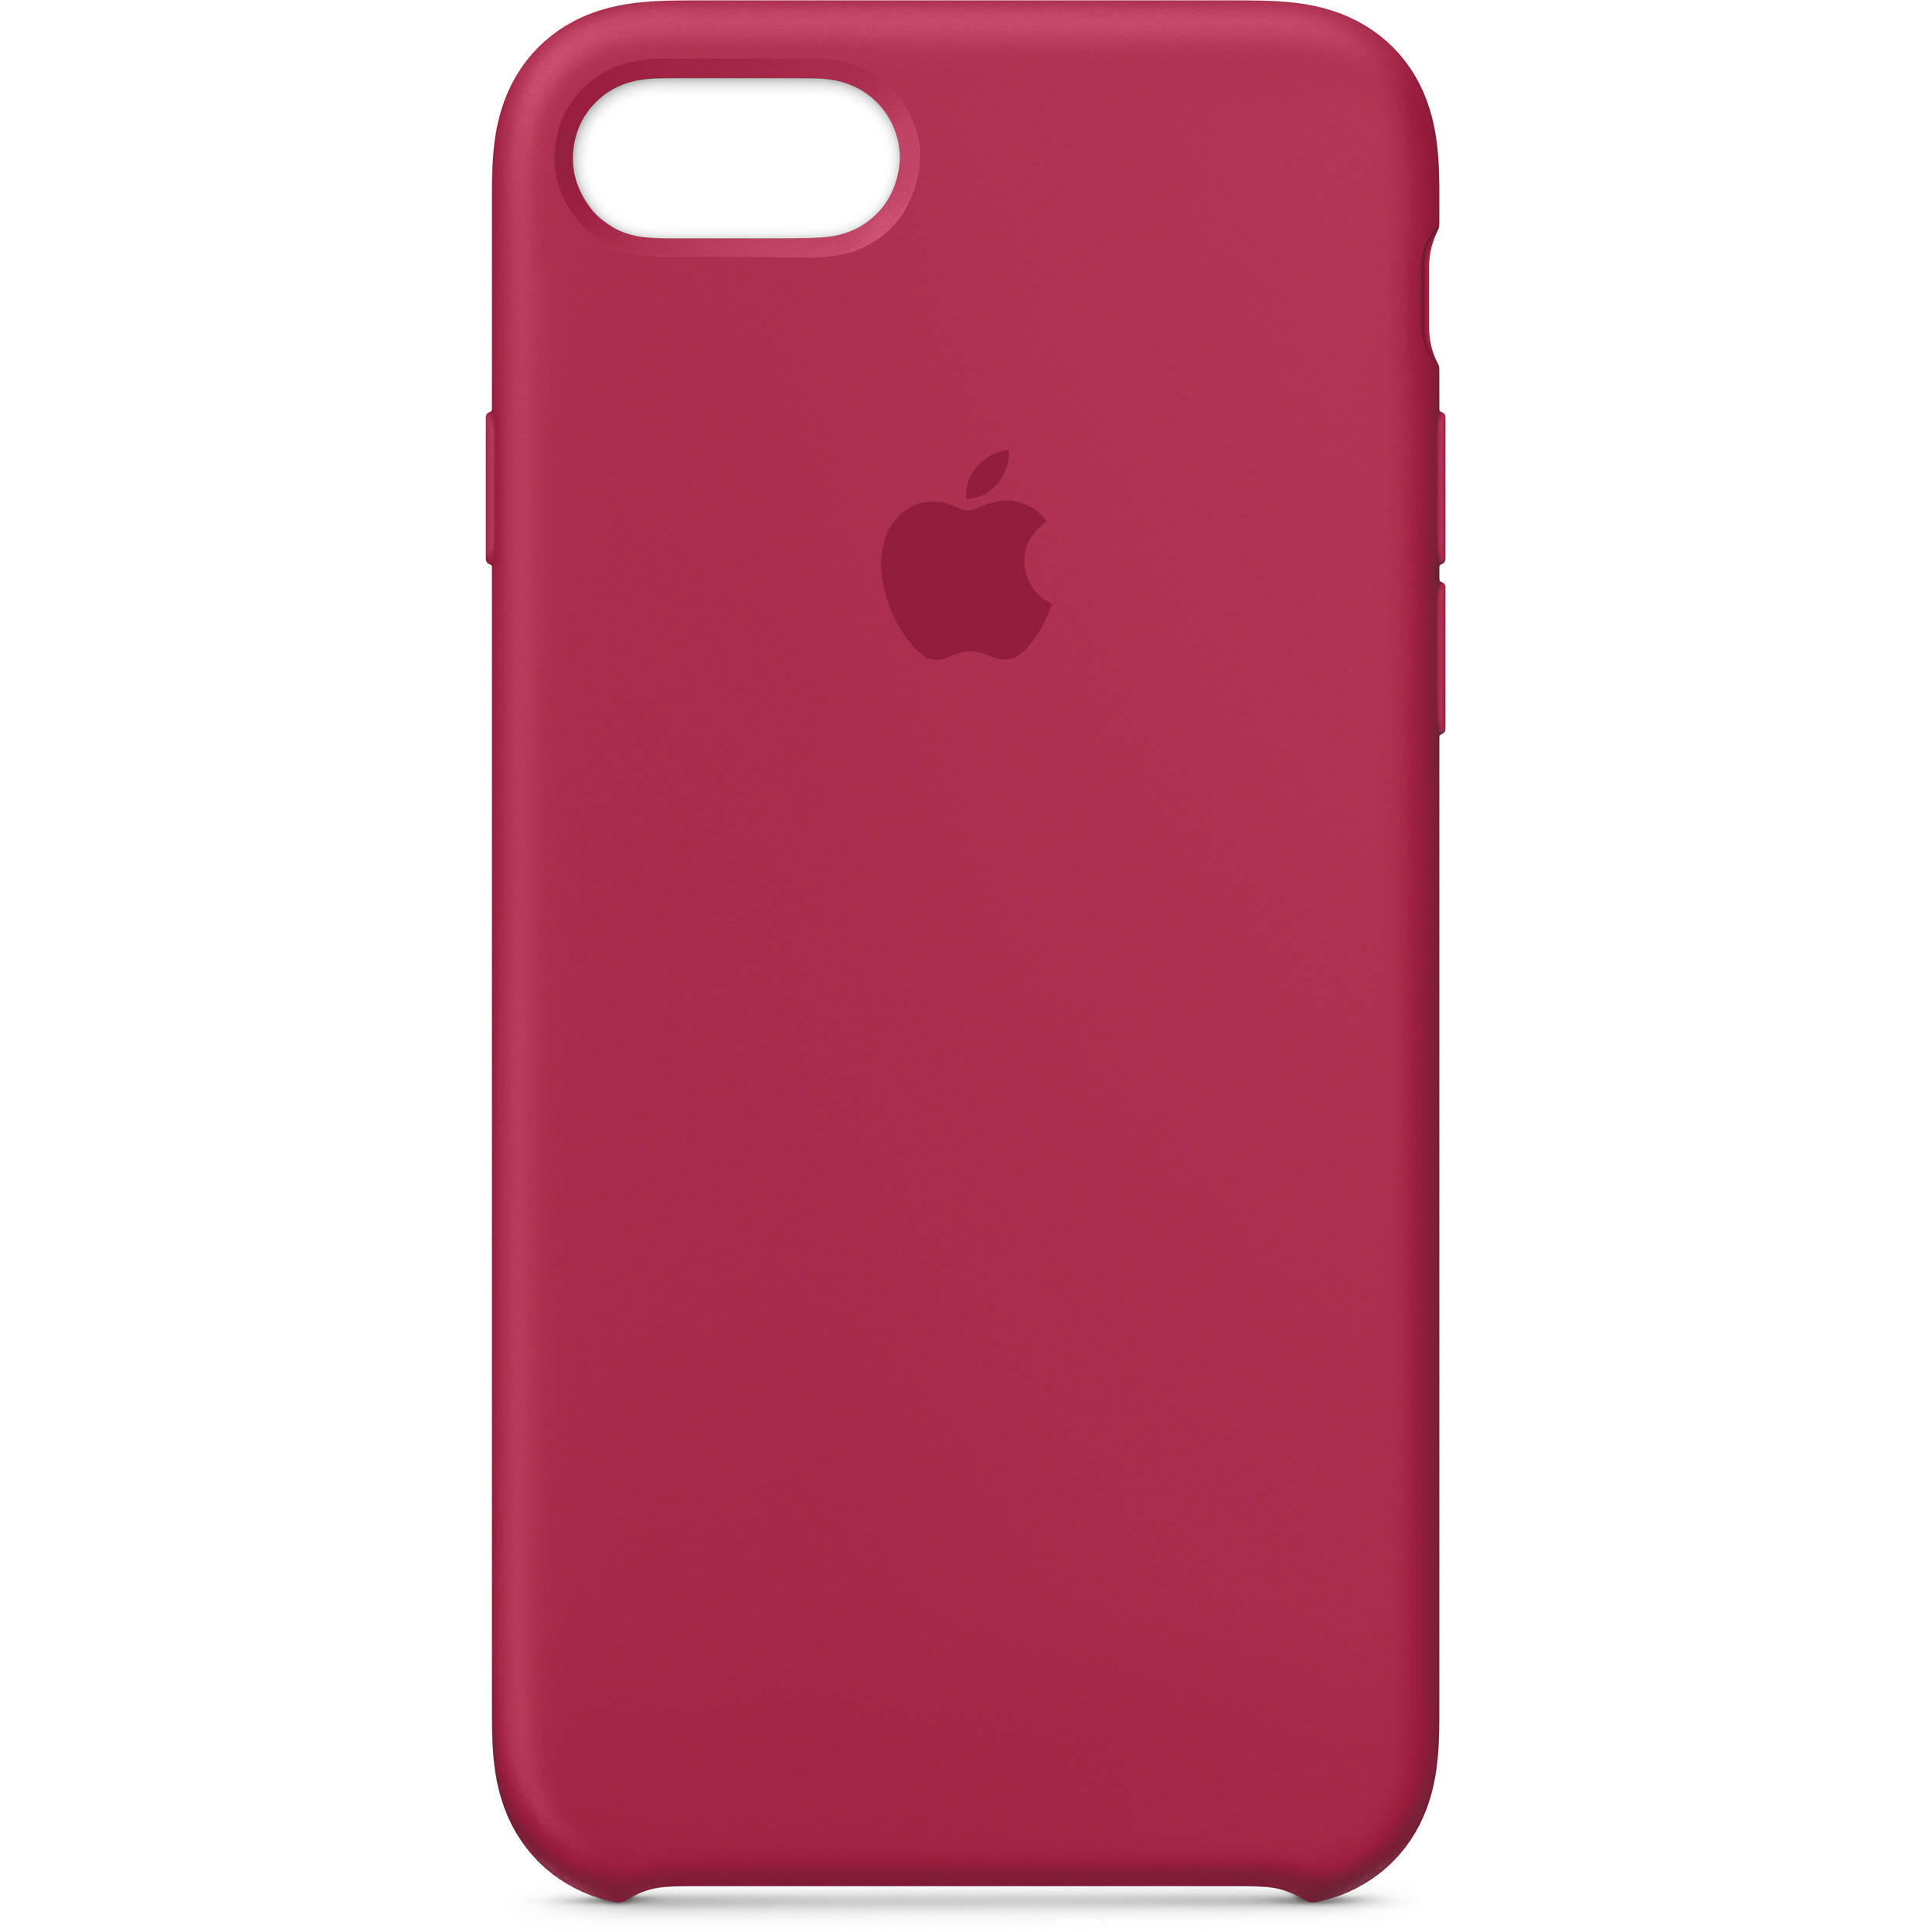 cheap for discount 8fc37 76ca8 Apple iPhone 7/8 Silicone Case (Rose Red)